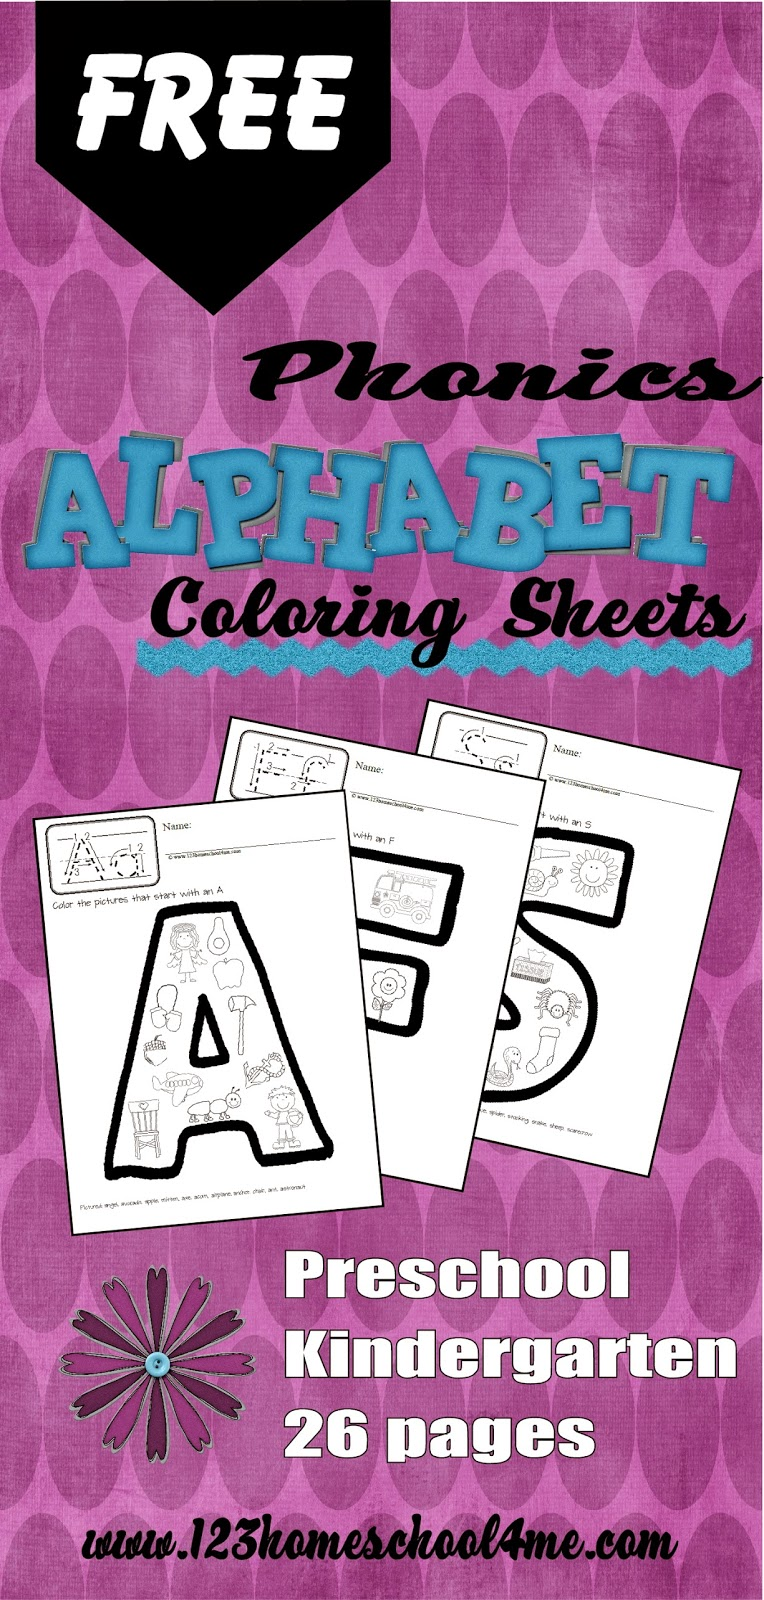 Phonics Alphabet Coloring Pages Freebie | Free Homeschool ...